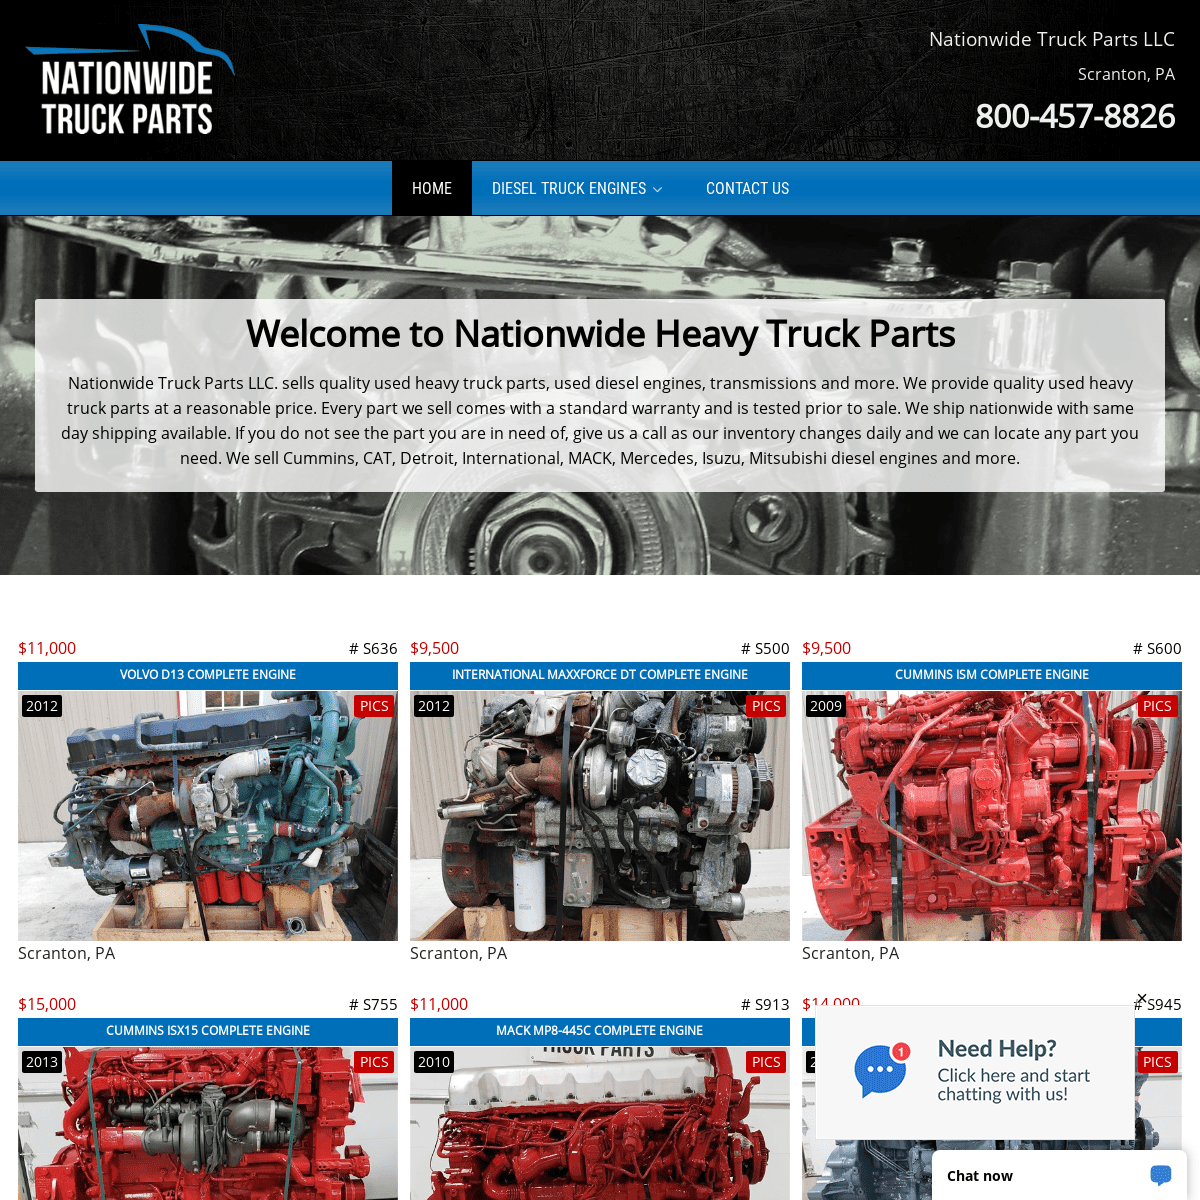 Nationwide Heavy Truck Parts - Nationwide Heavy Truck Parts